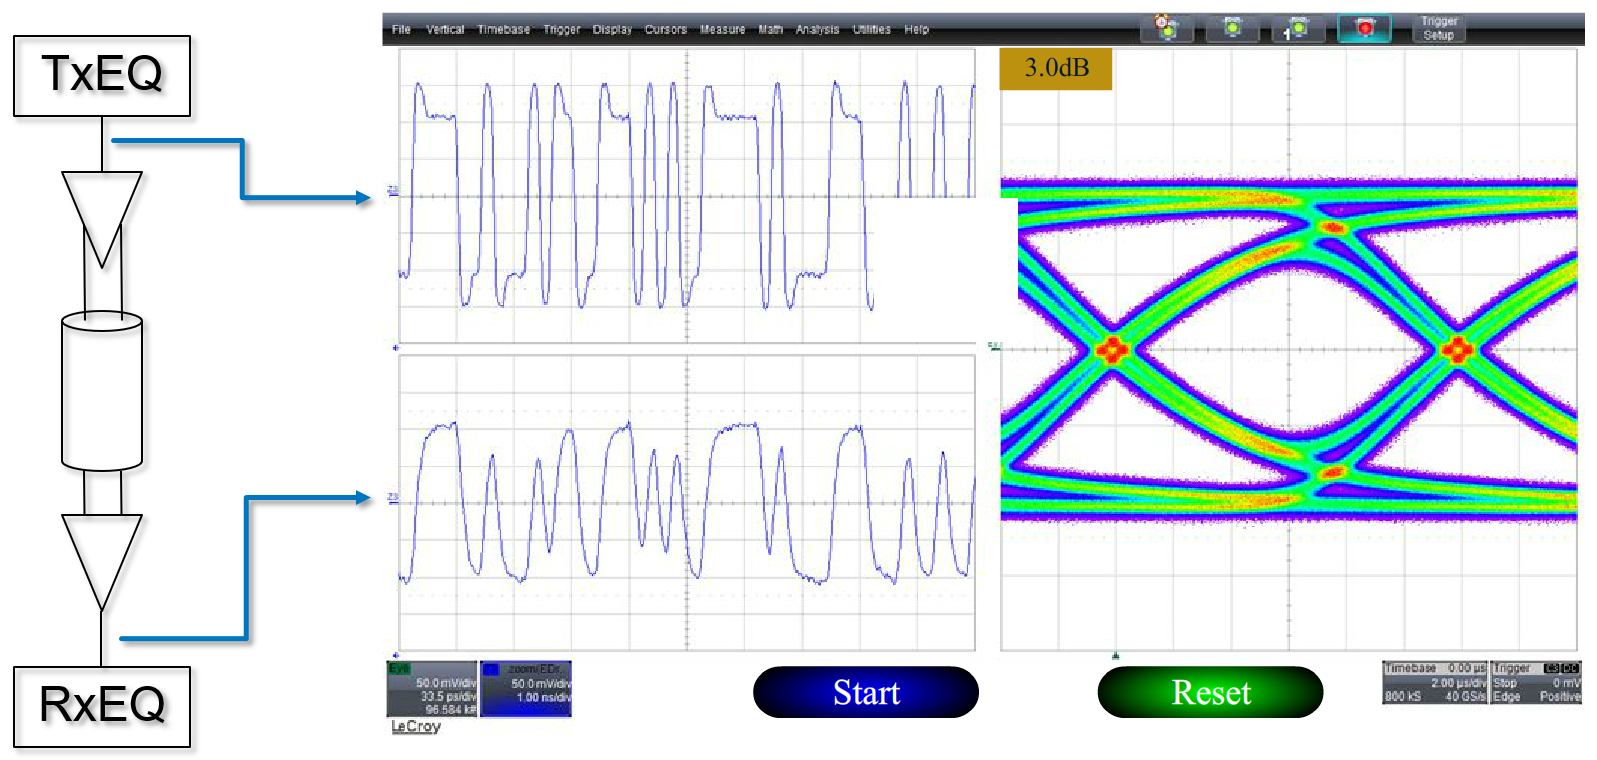 Test happens teledyne lecroy blog the effects of de emphasis on with 3 db of de emphasis the signals eye diagram margins are significantly ccuart Gallery